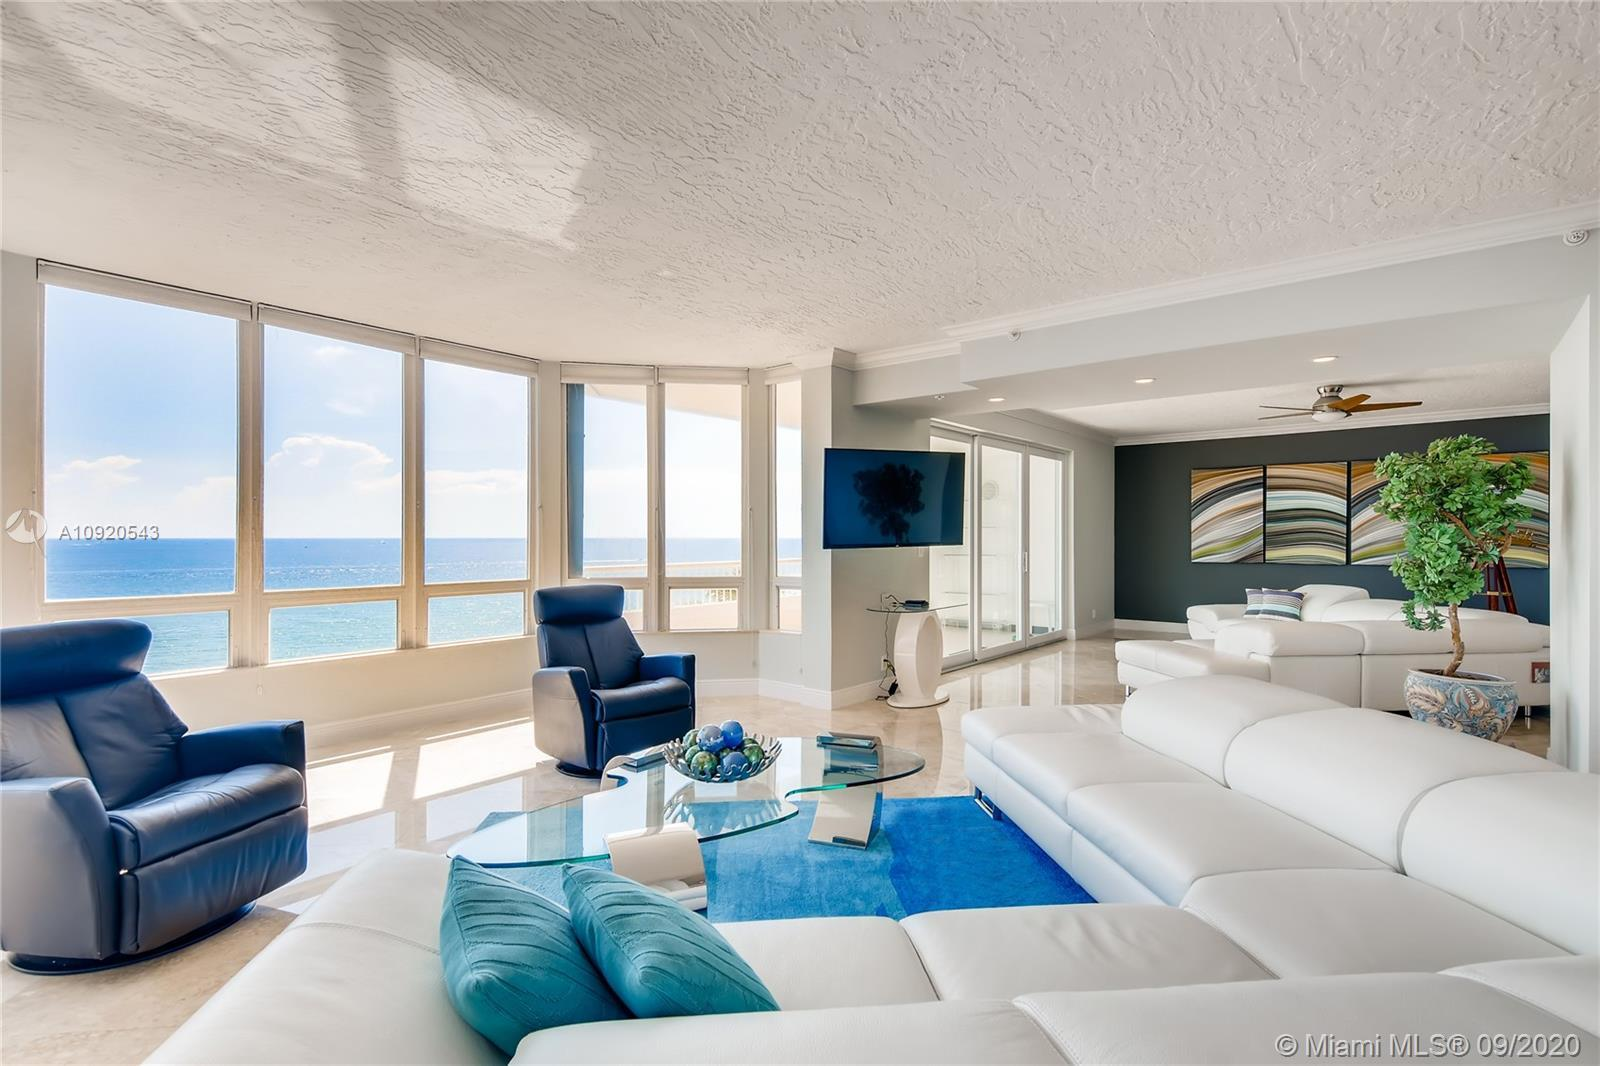 Want to live like Richard Branson? Living here is like living on his private Necker Island. It's tr